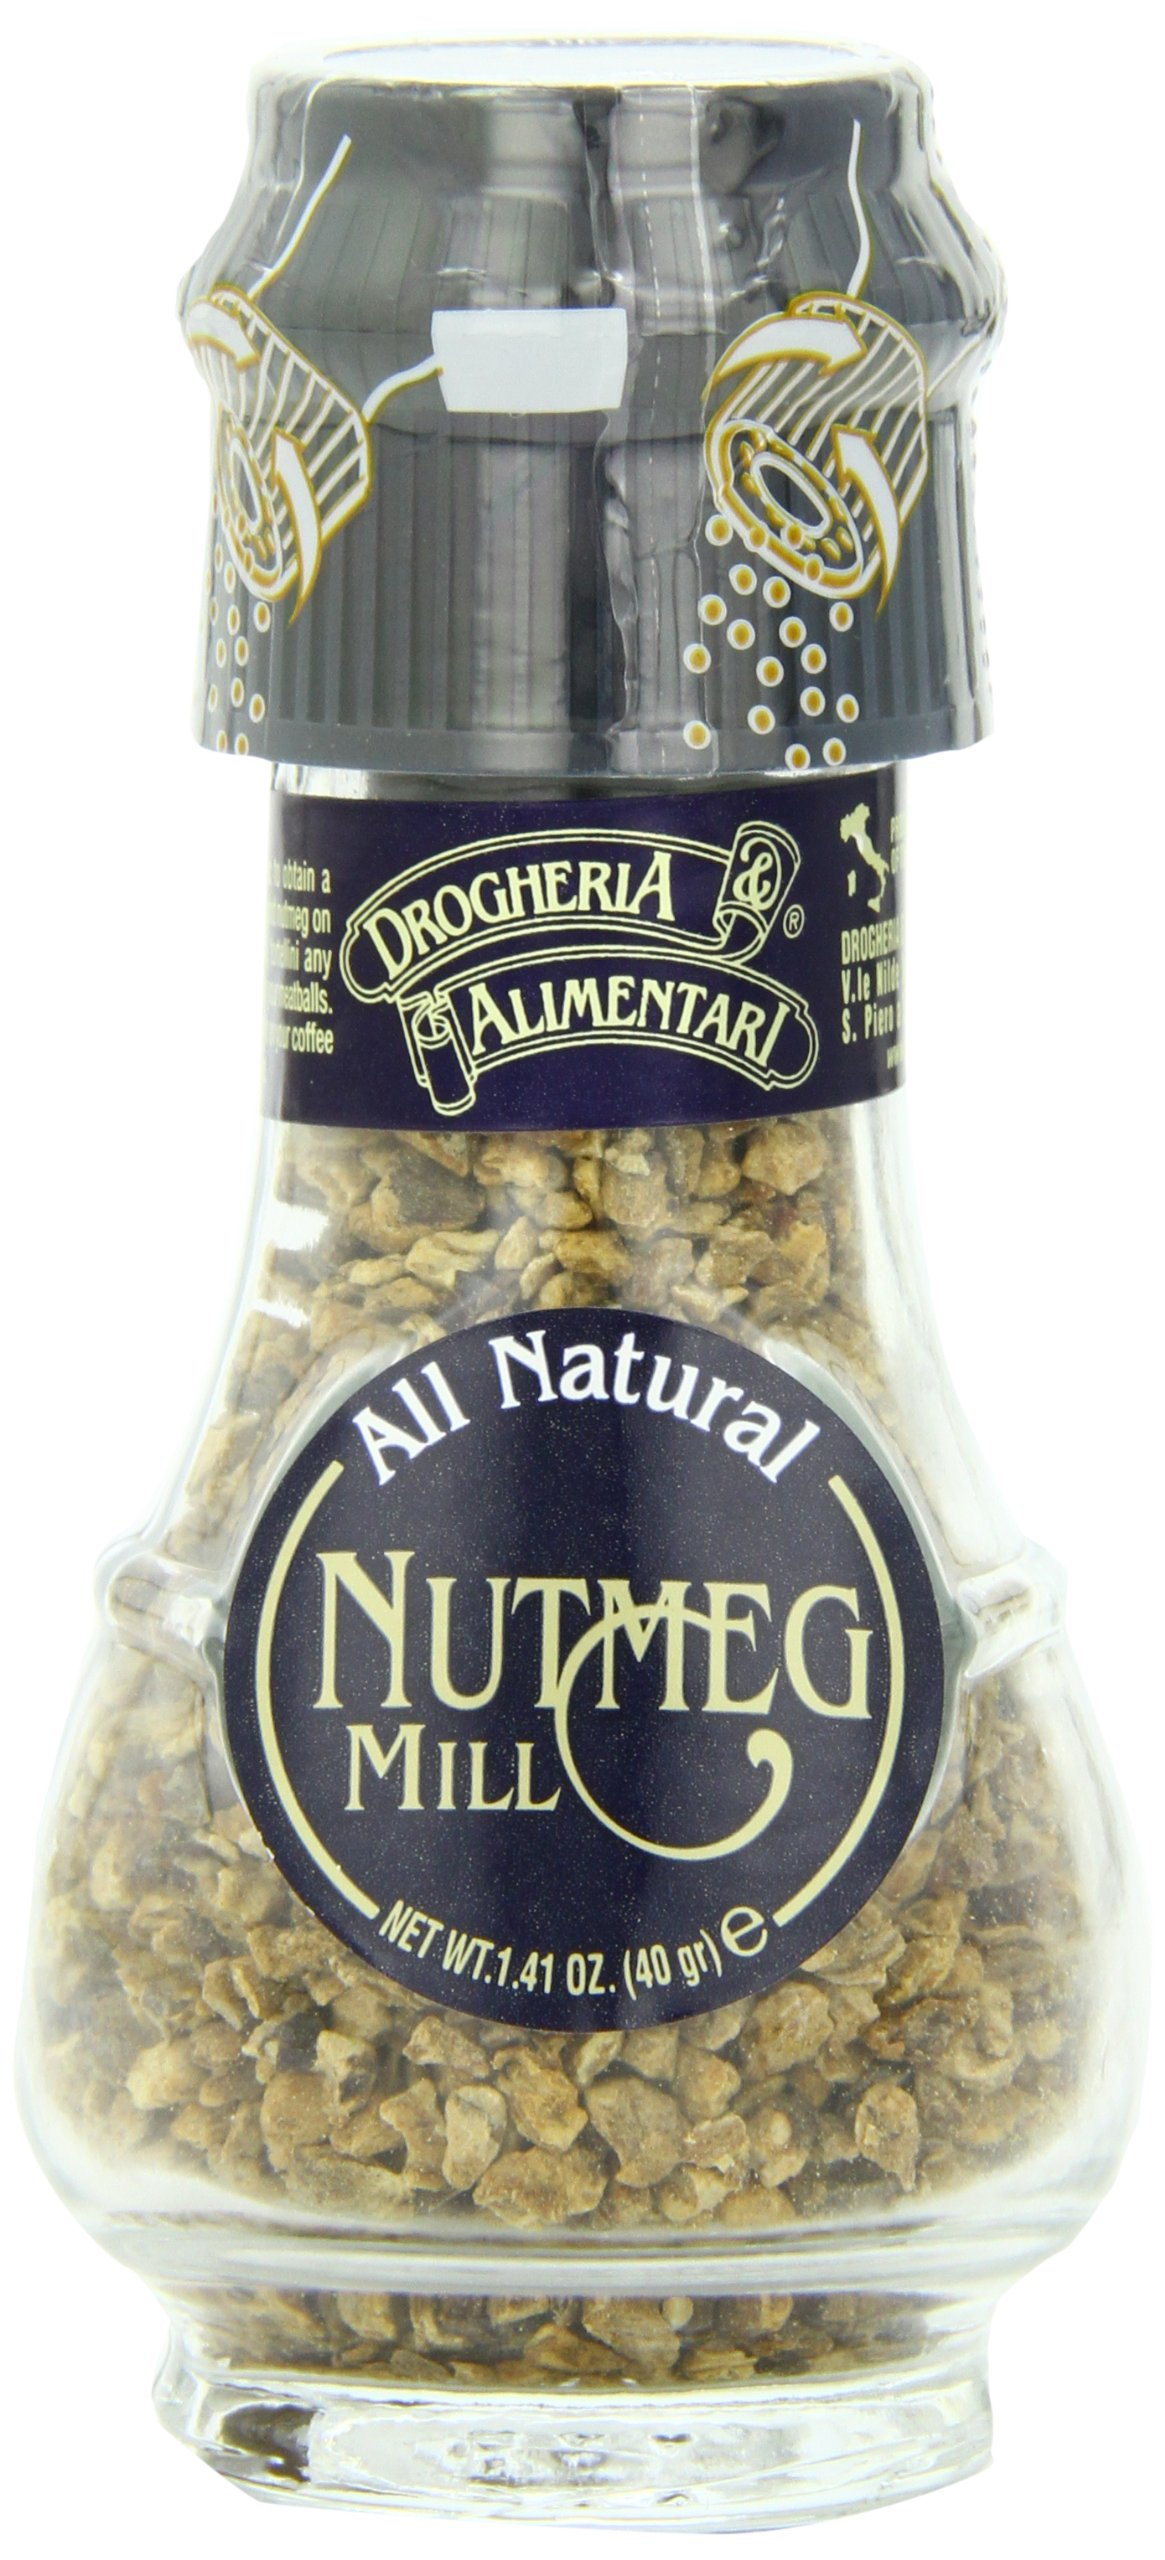 Drogheria & Alimentari All Natural Spice Grinder Nutmeg, 1.41-Ounce Jars (Pack of 3)